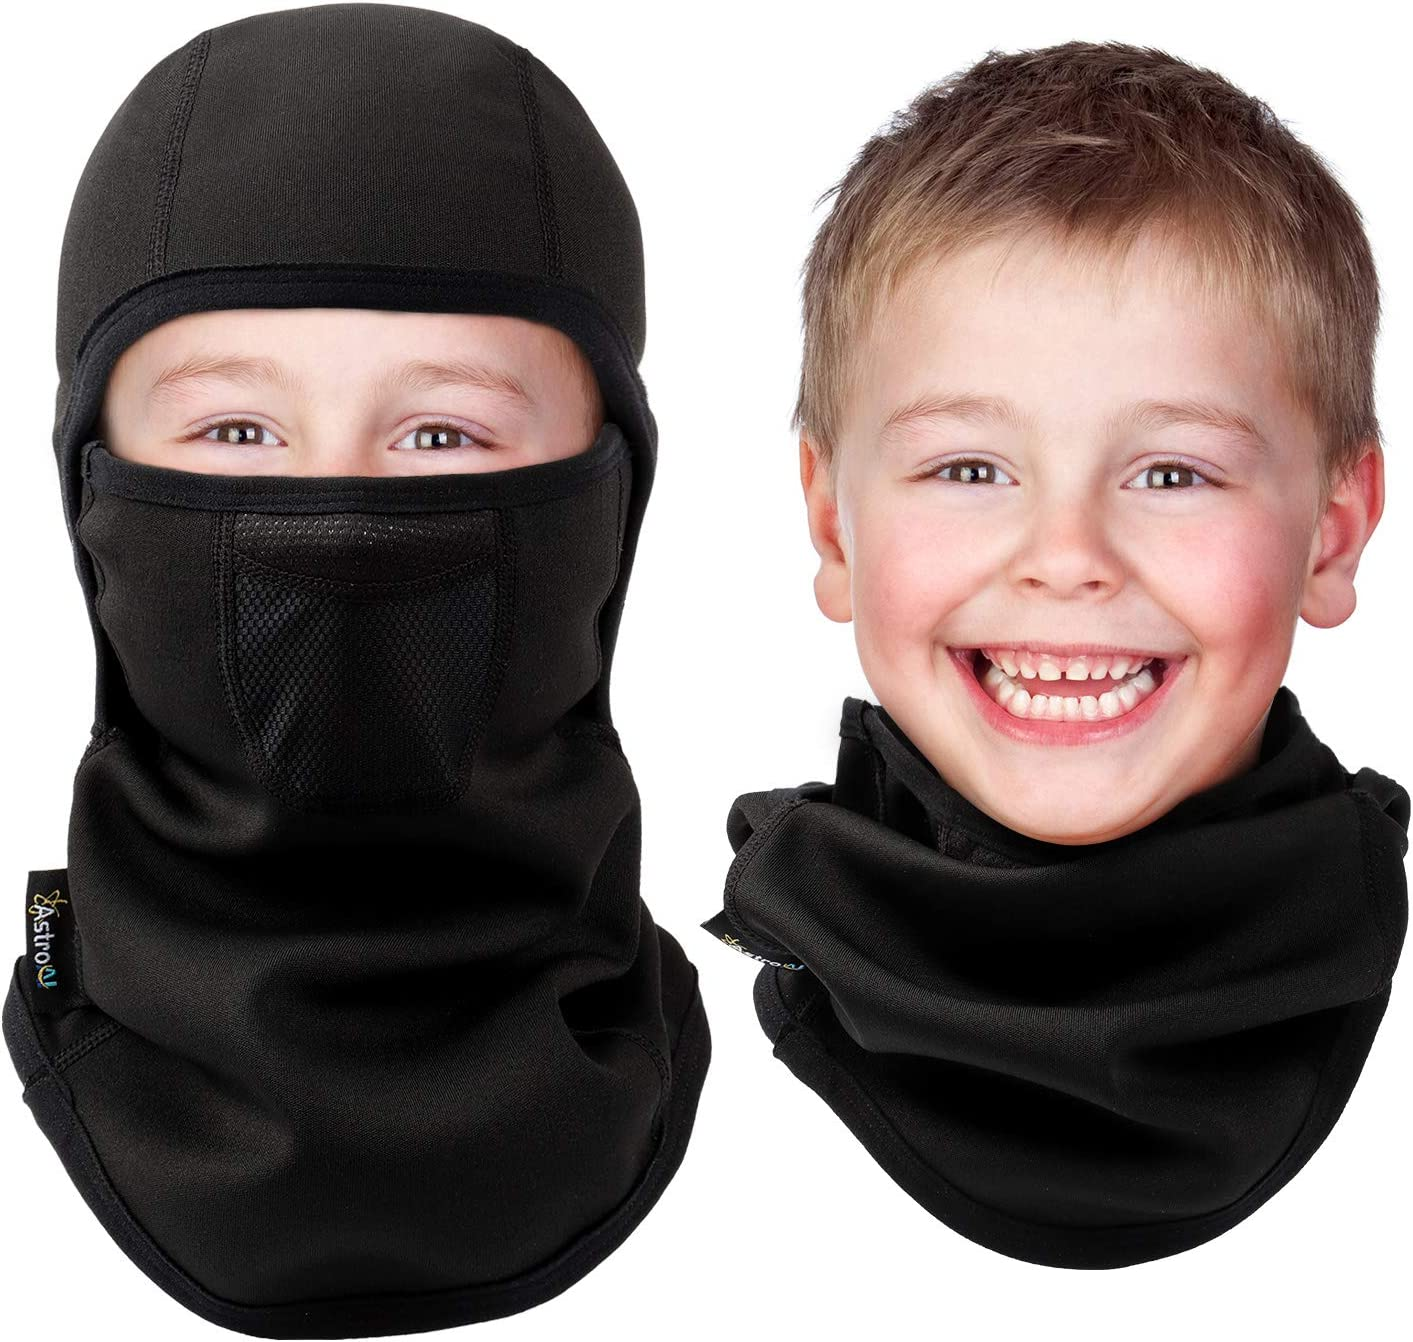 AstroAI Kids Balaclava Ski Mask Neck Warmer for Cold Weather Windproof Breathable Face Mask for Boys & Girls in Winter for Skiing, Running, Cycling: Automotive